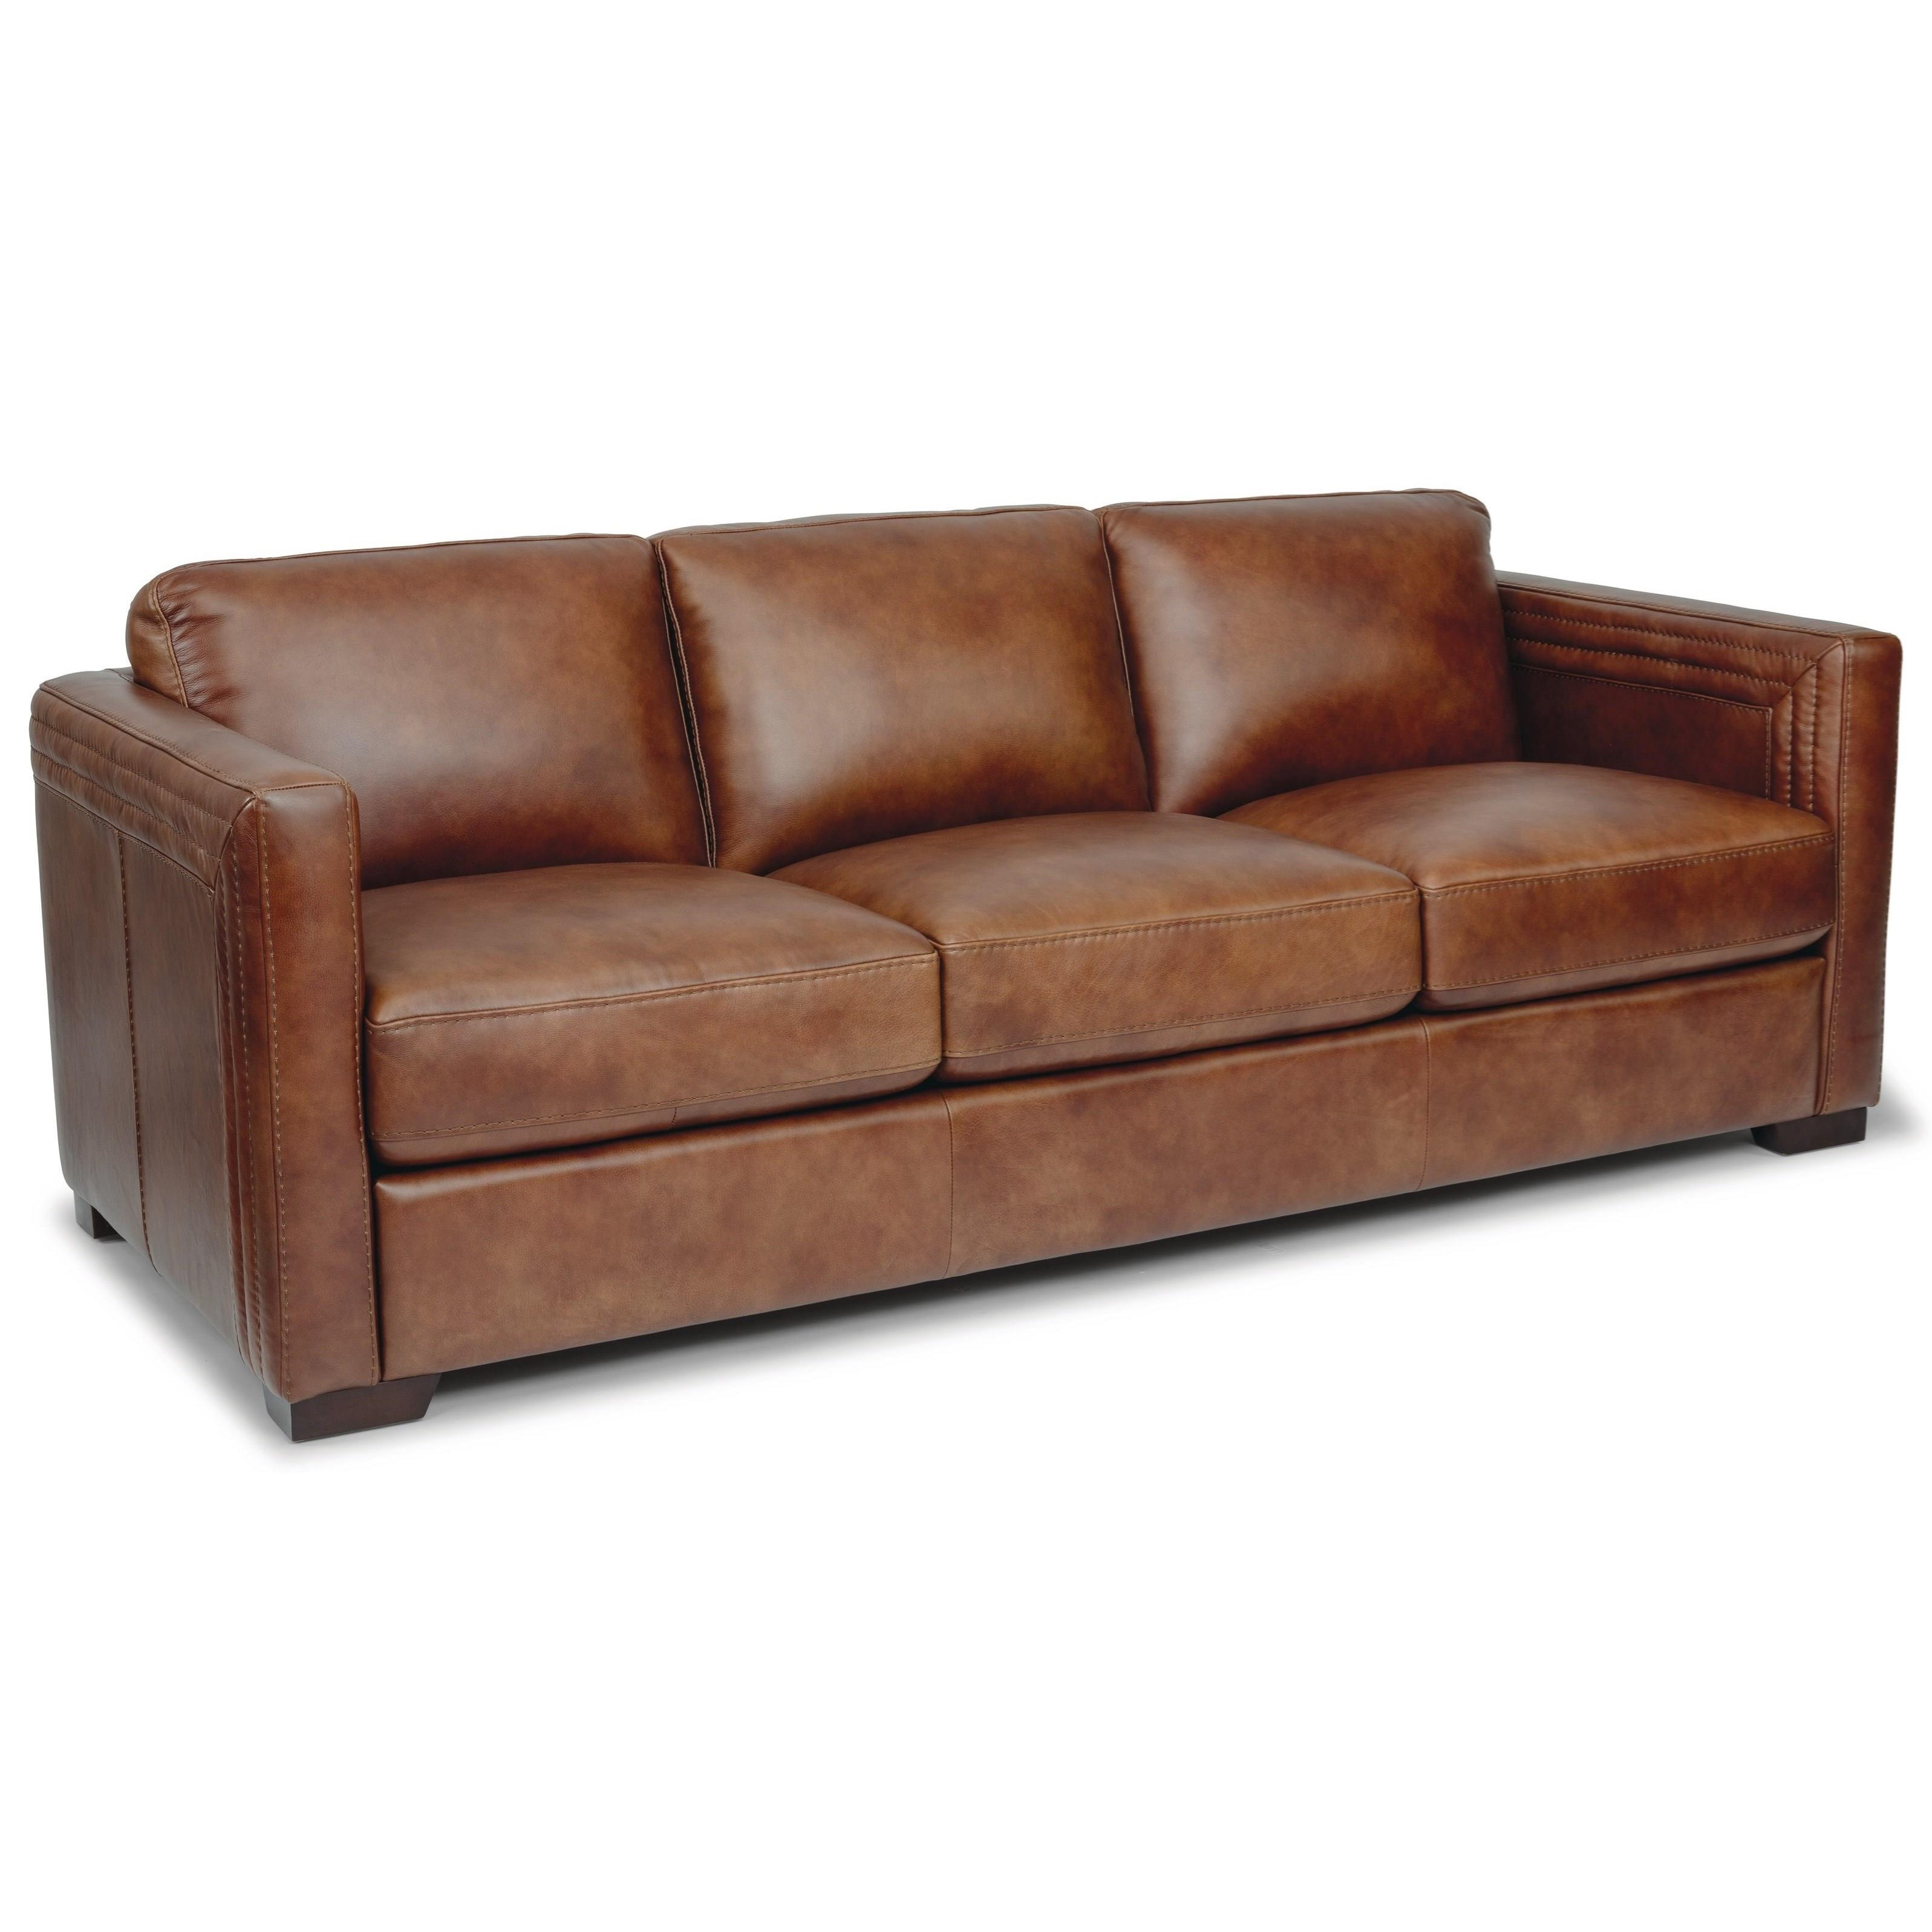 - Flexsteel Latitudes - Milan Contemporary 3-Seat Leather Sofa With